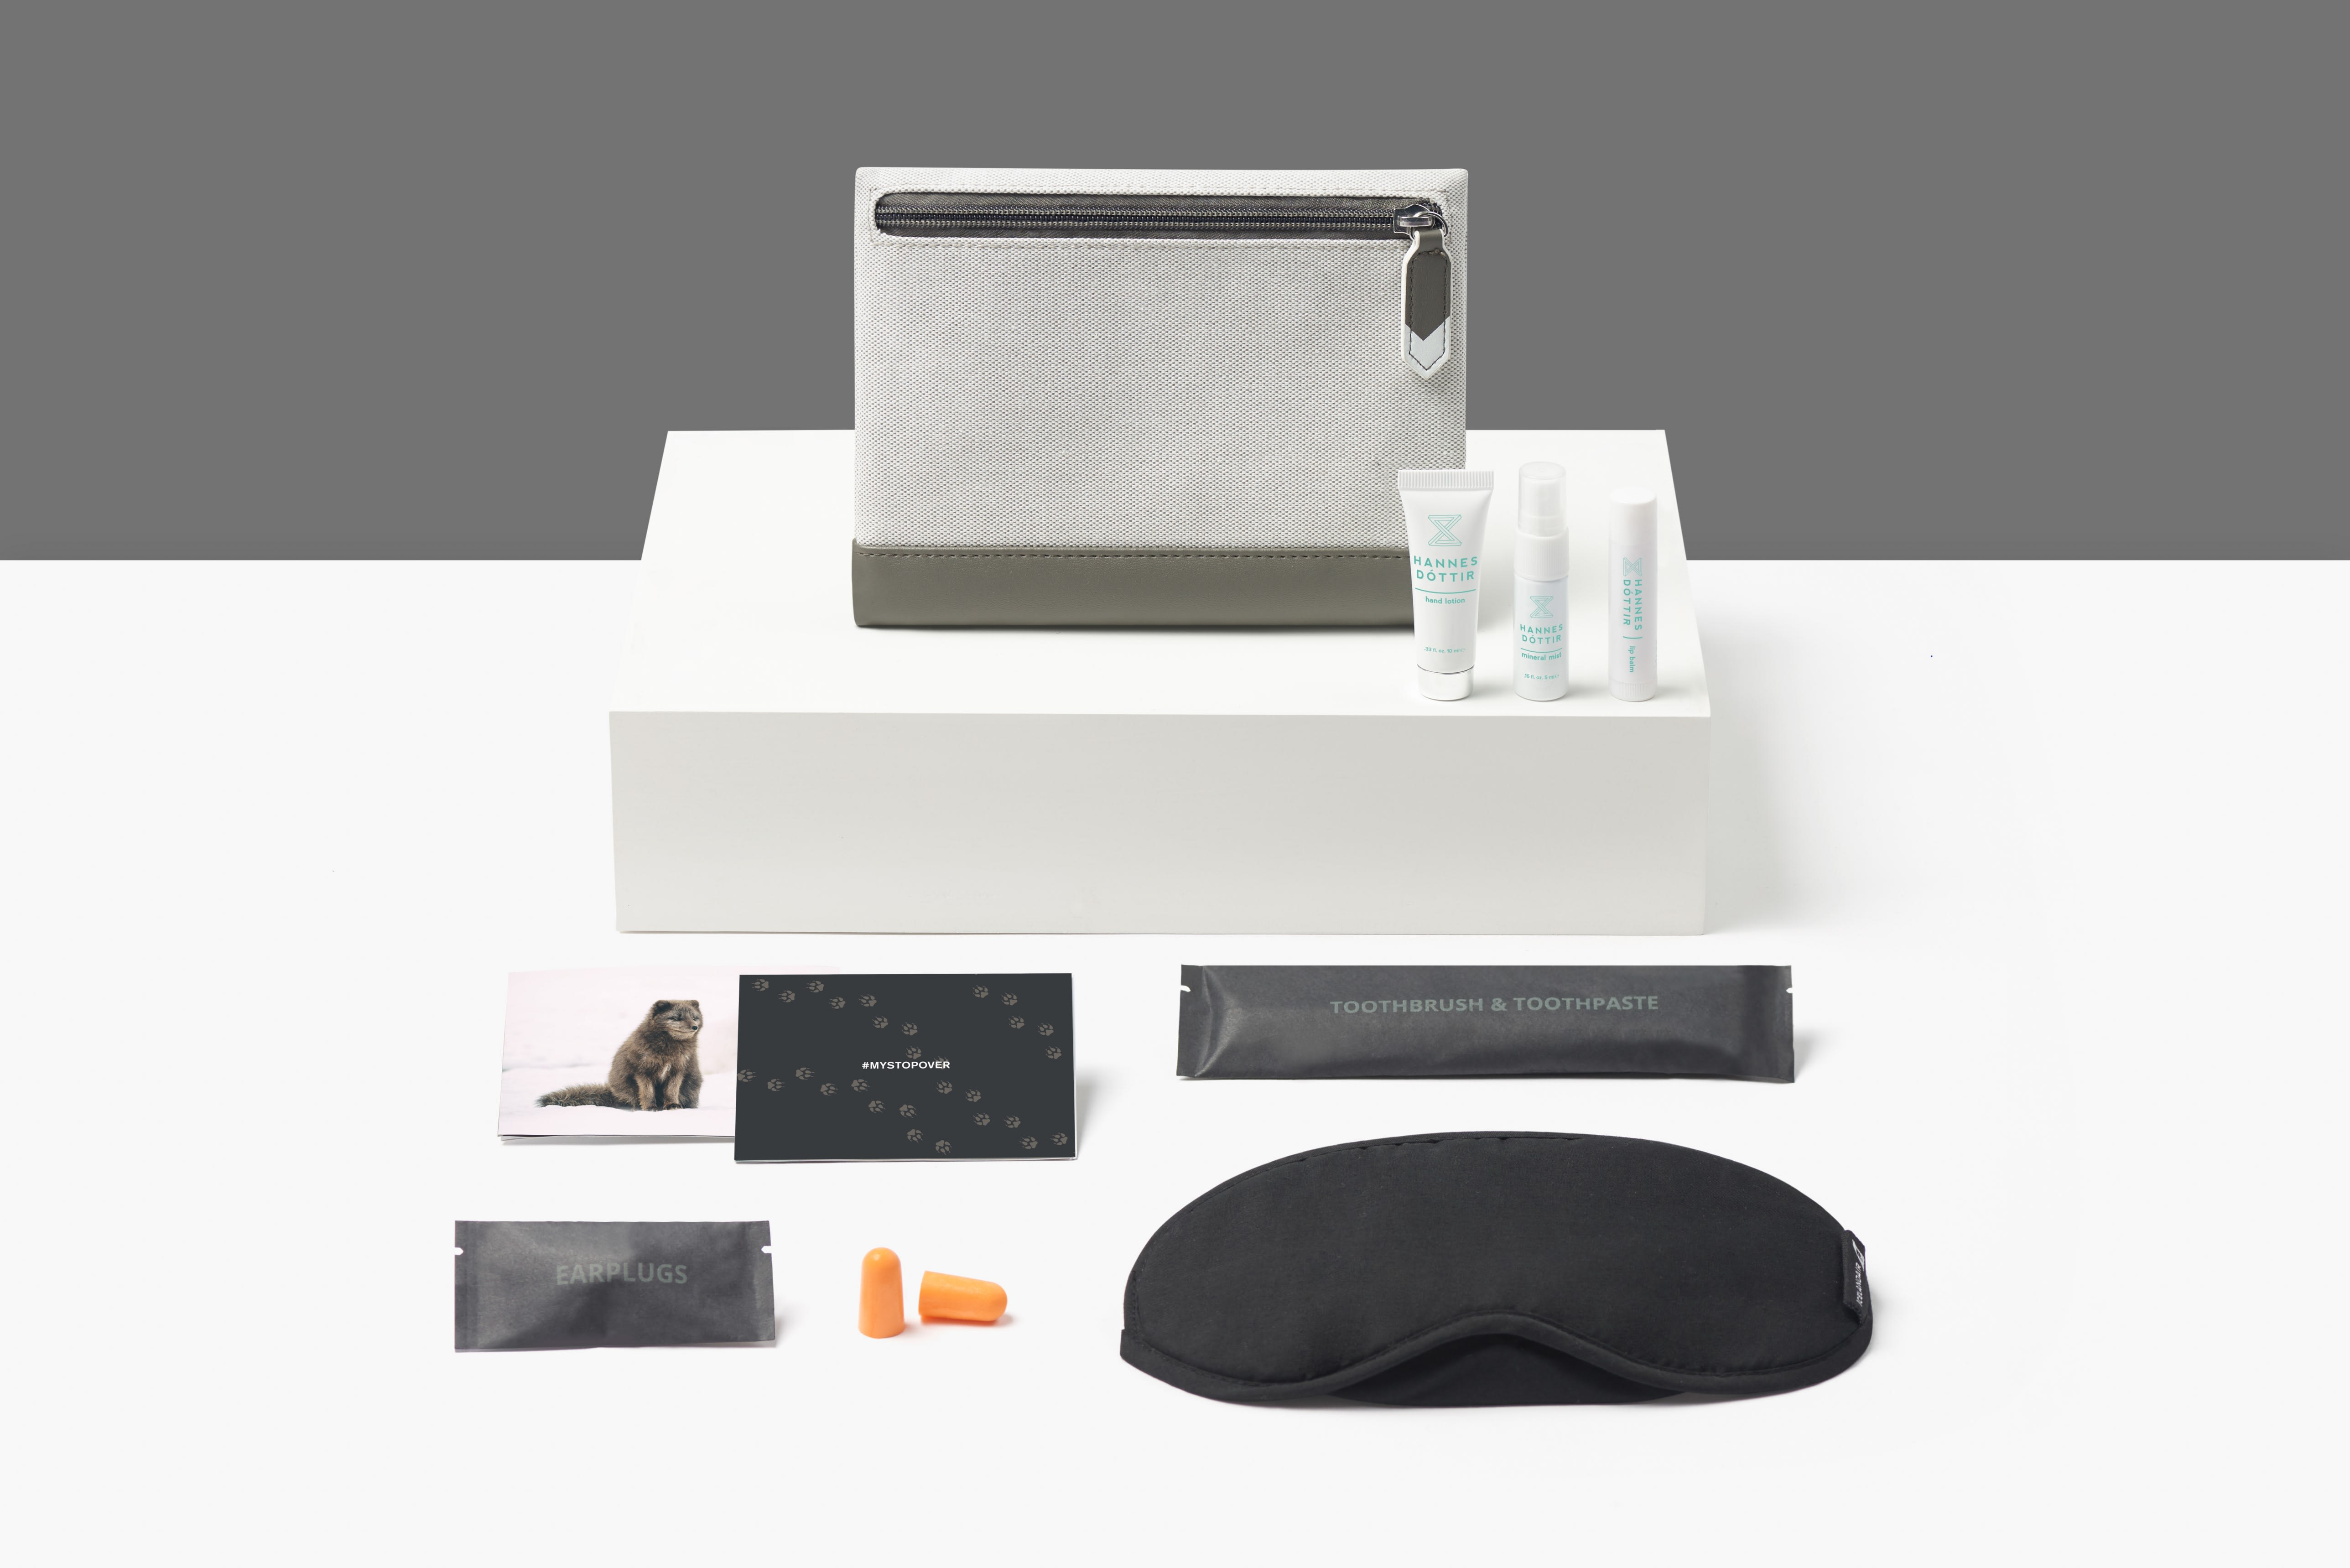 The Icelandair amenity kit displayed with all items taken out of the pouch, including an eye mask, toothbrush, toiletries and ear buds